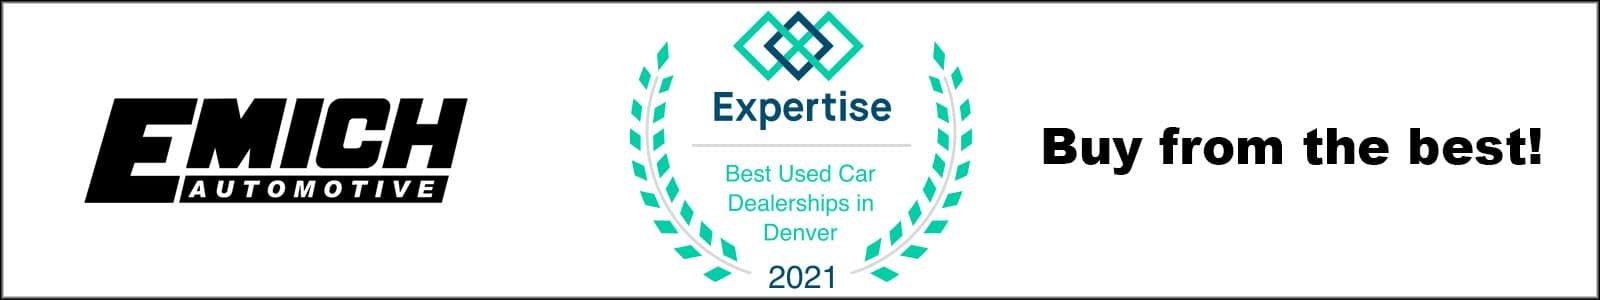 Best Used Car Dealer in Denver Award Winner!